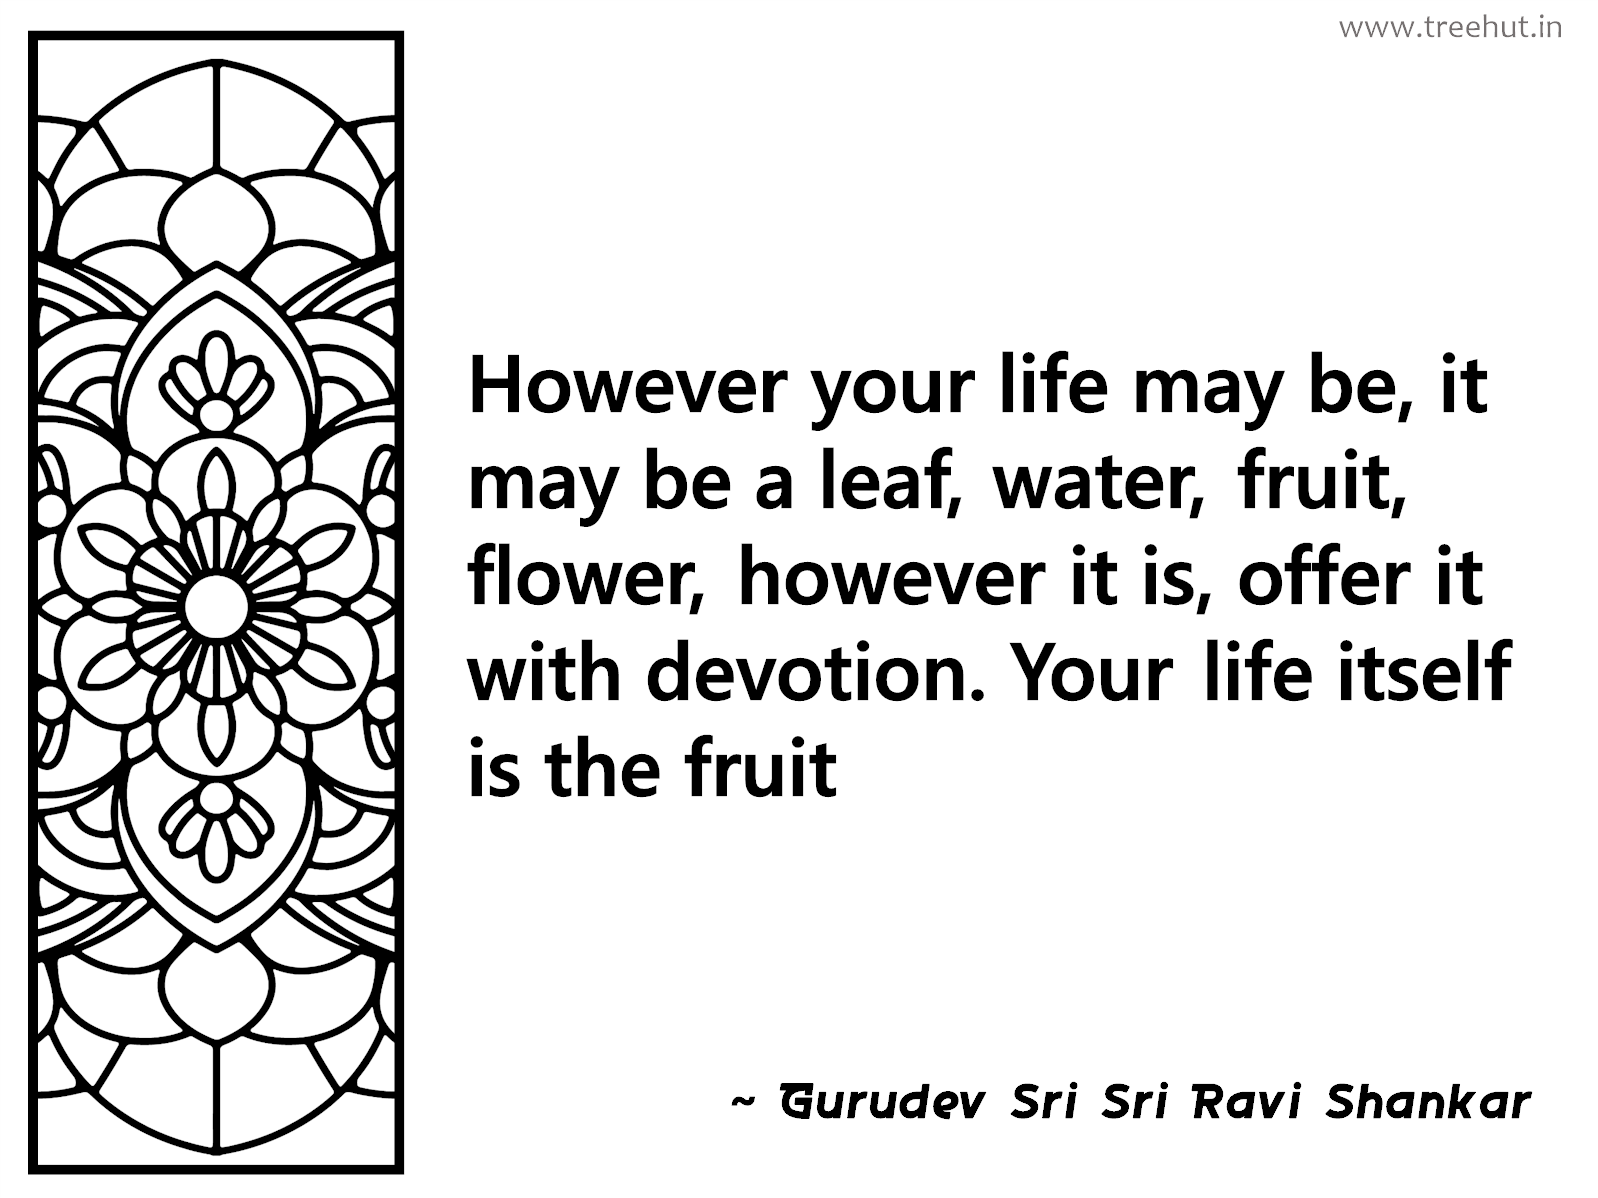 However your life may be, it may be a leaf, water, fruit, flower, however it is, offer it with devotion. Your life itself is the fruit Inspirational Quote by Gurudev Sri Sri Ravi Shankar, coloring pages